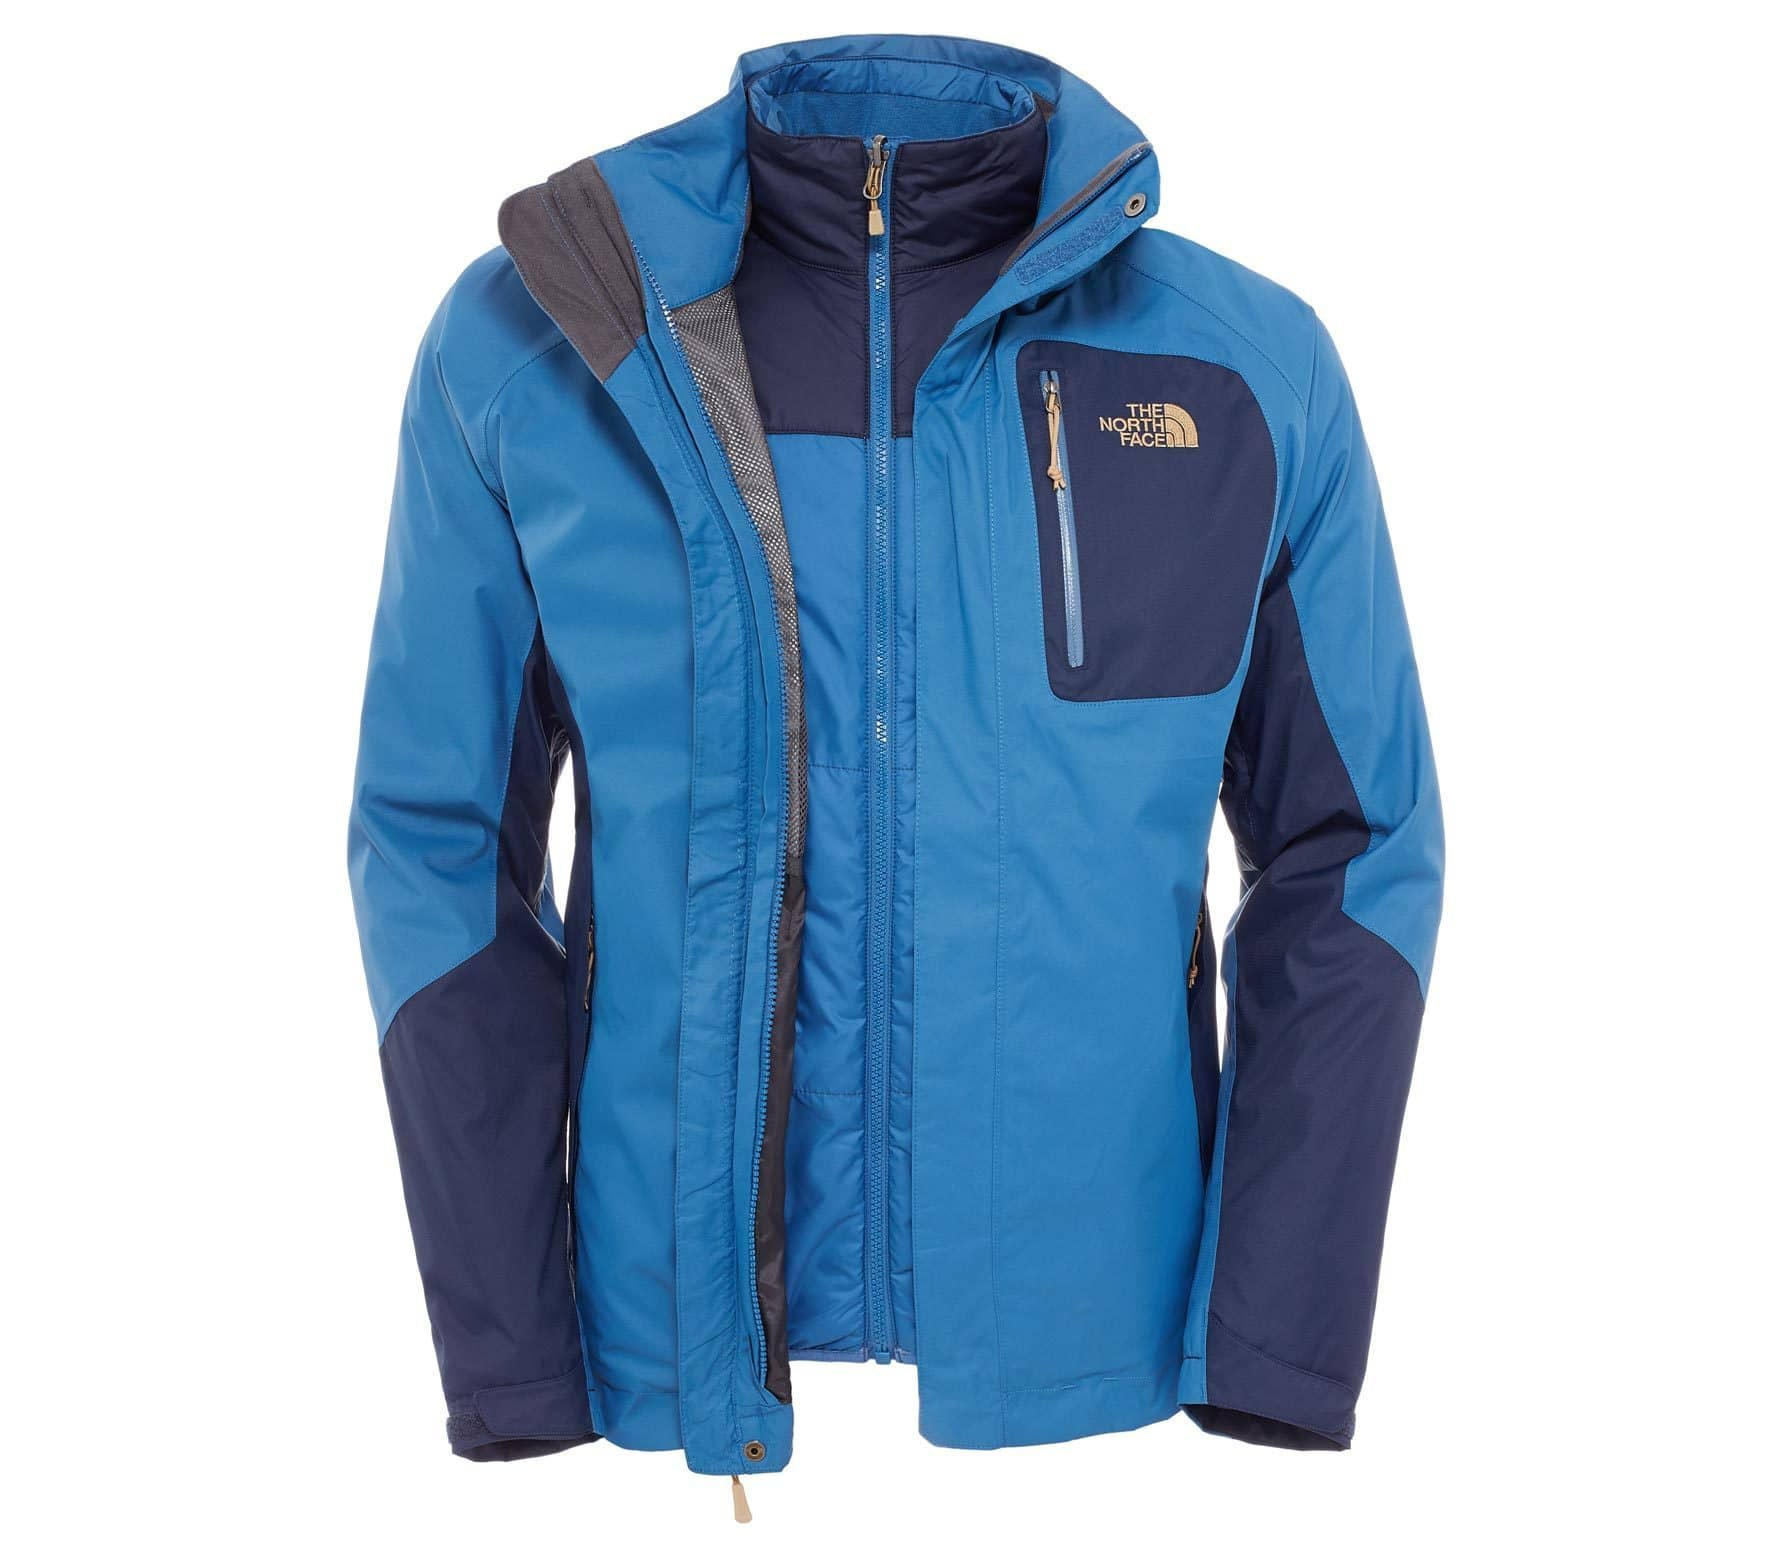 The North Face - Zenith Triclimate Uomo giacca (dunkelbau) compra ... 288d58b13e35